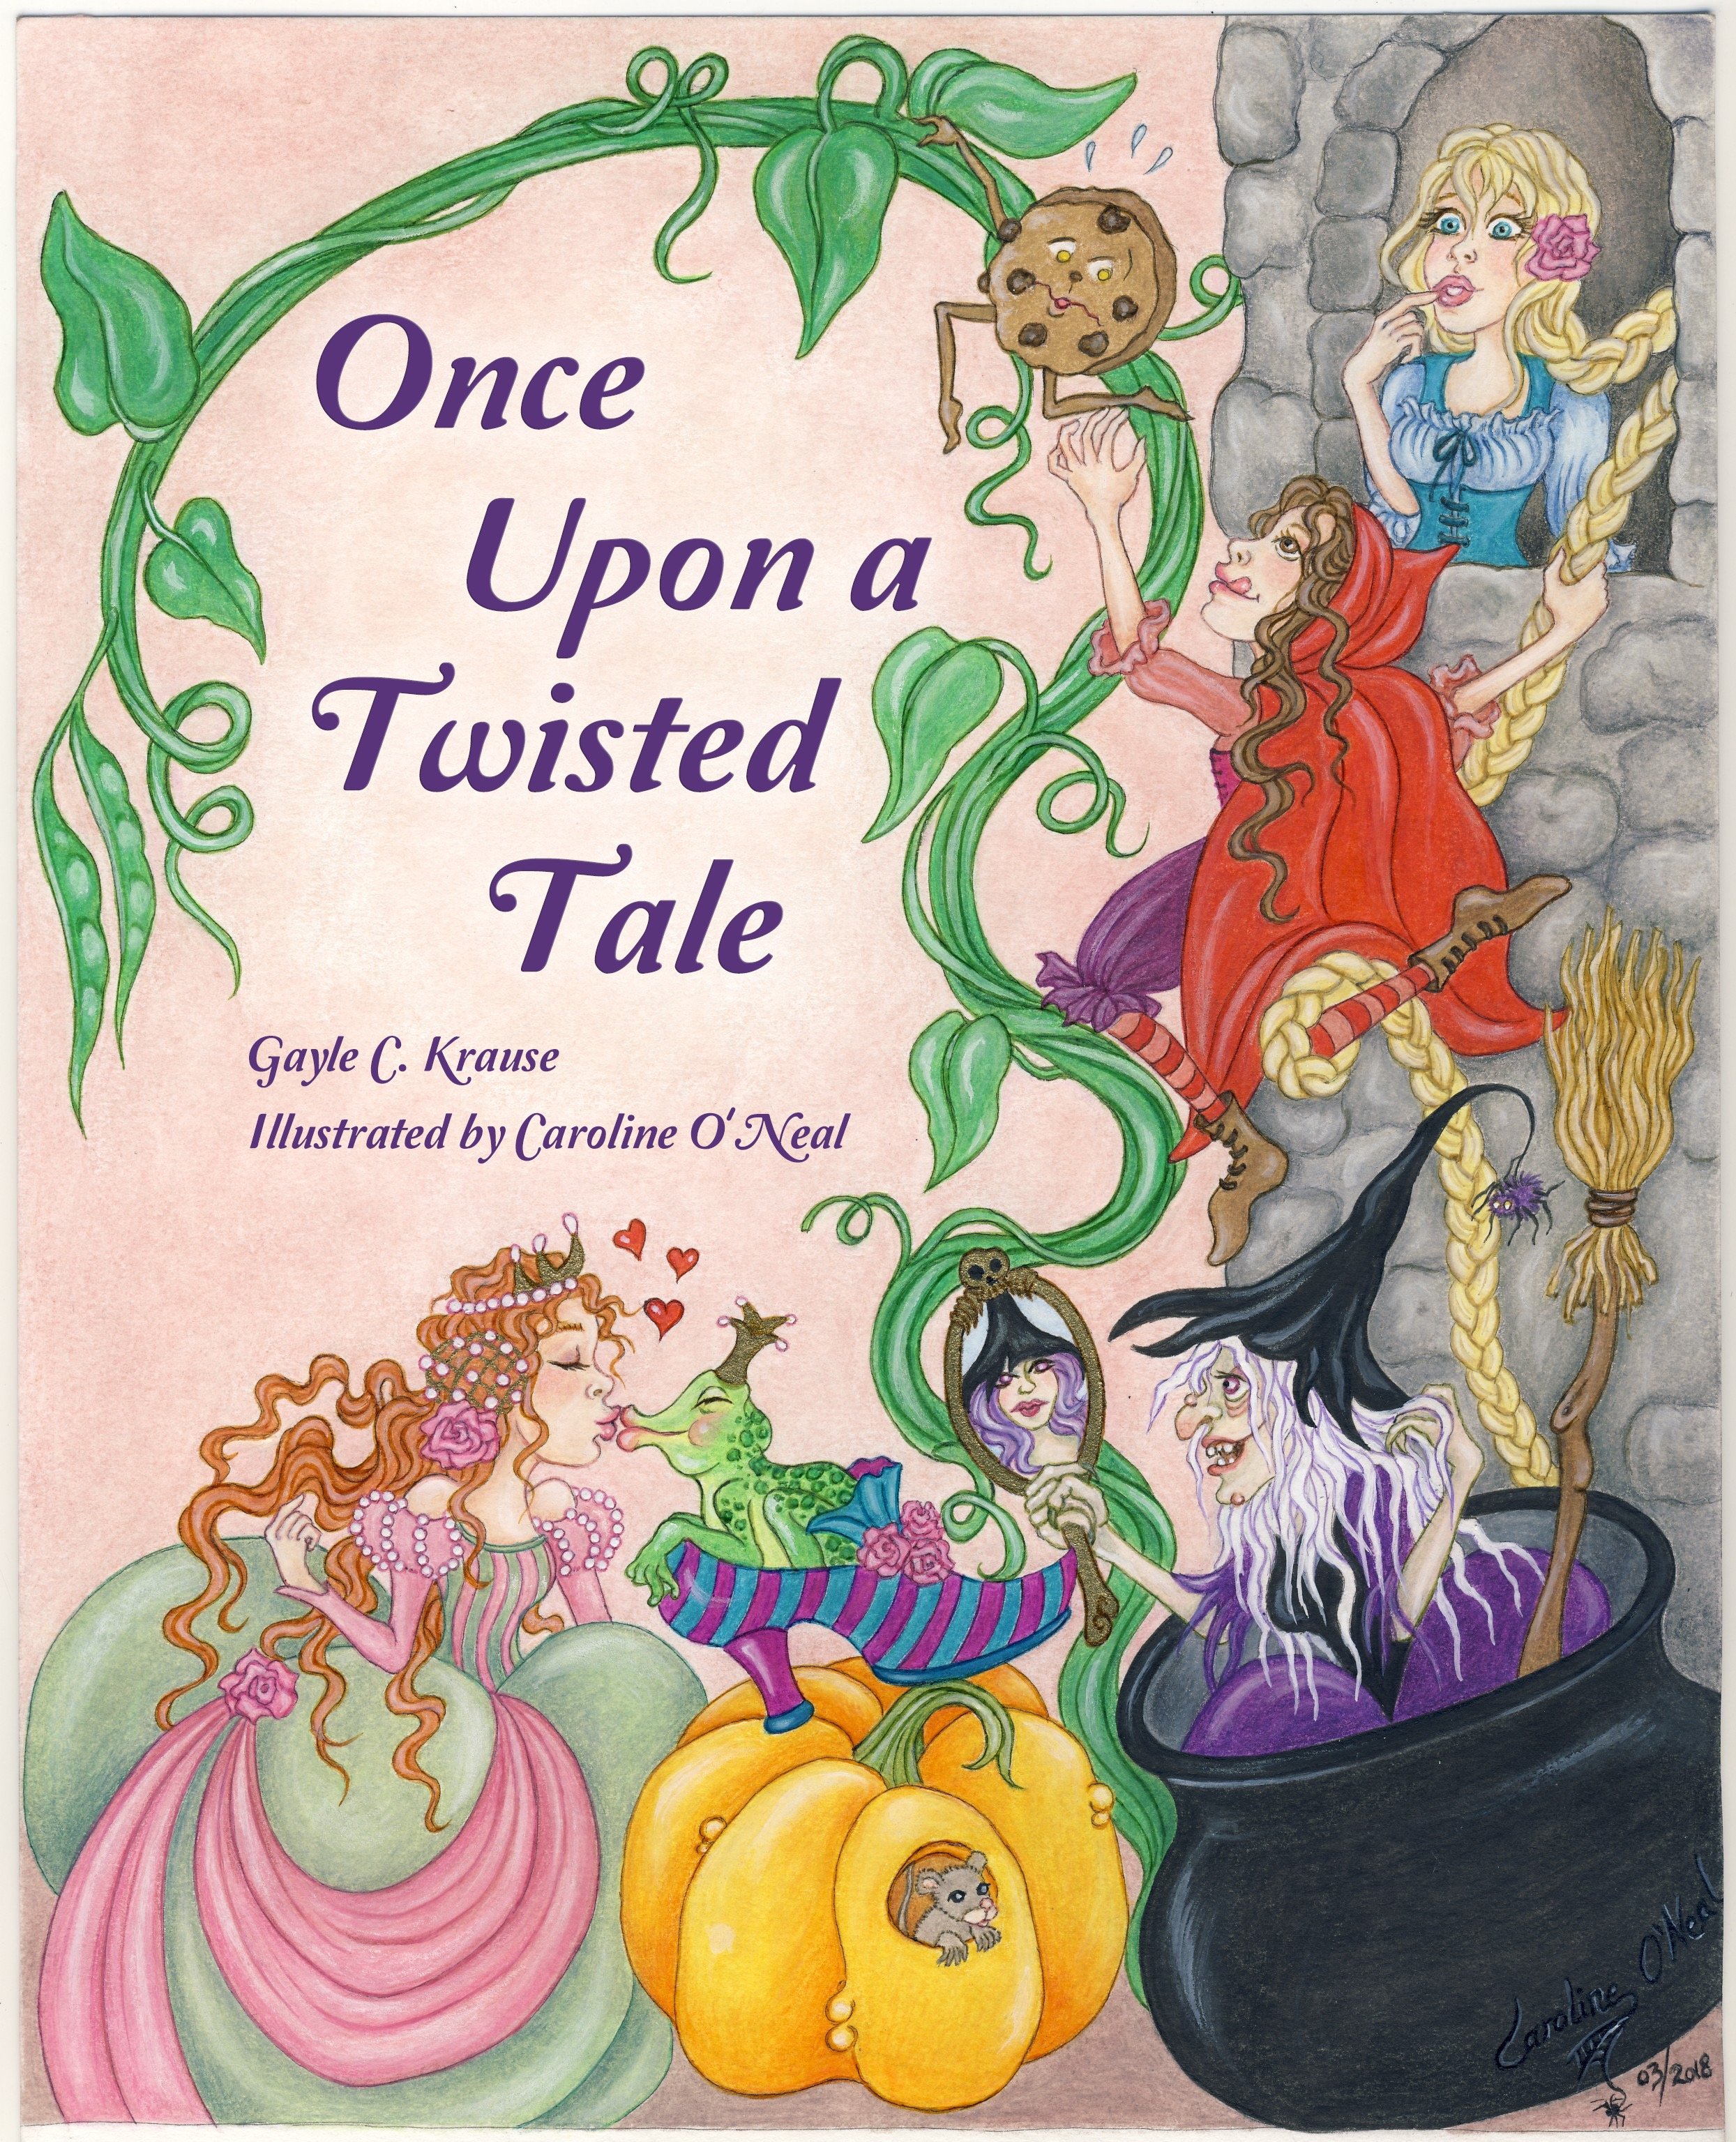 ONCE UPON A TWISTED TALE